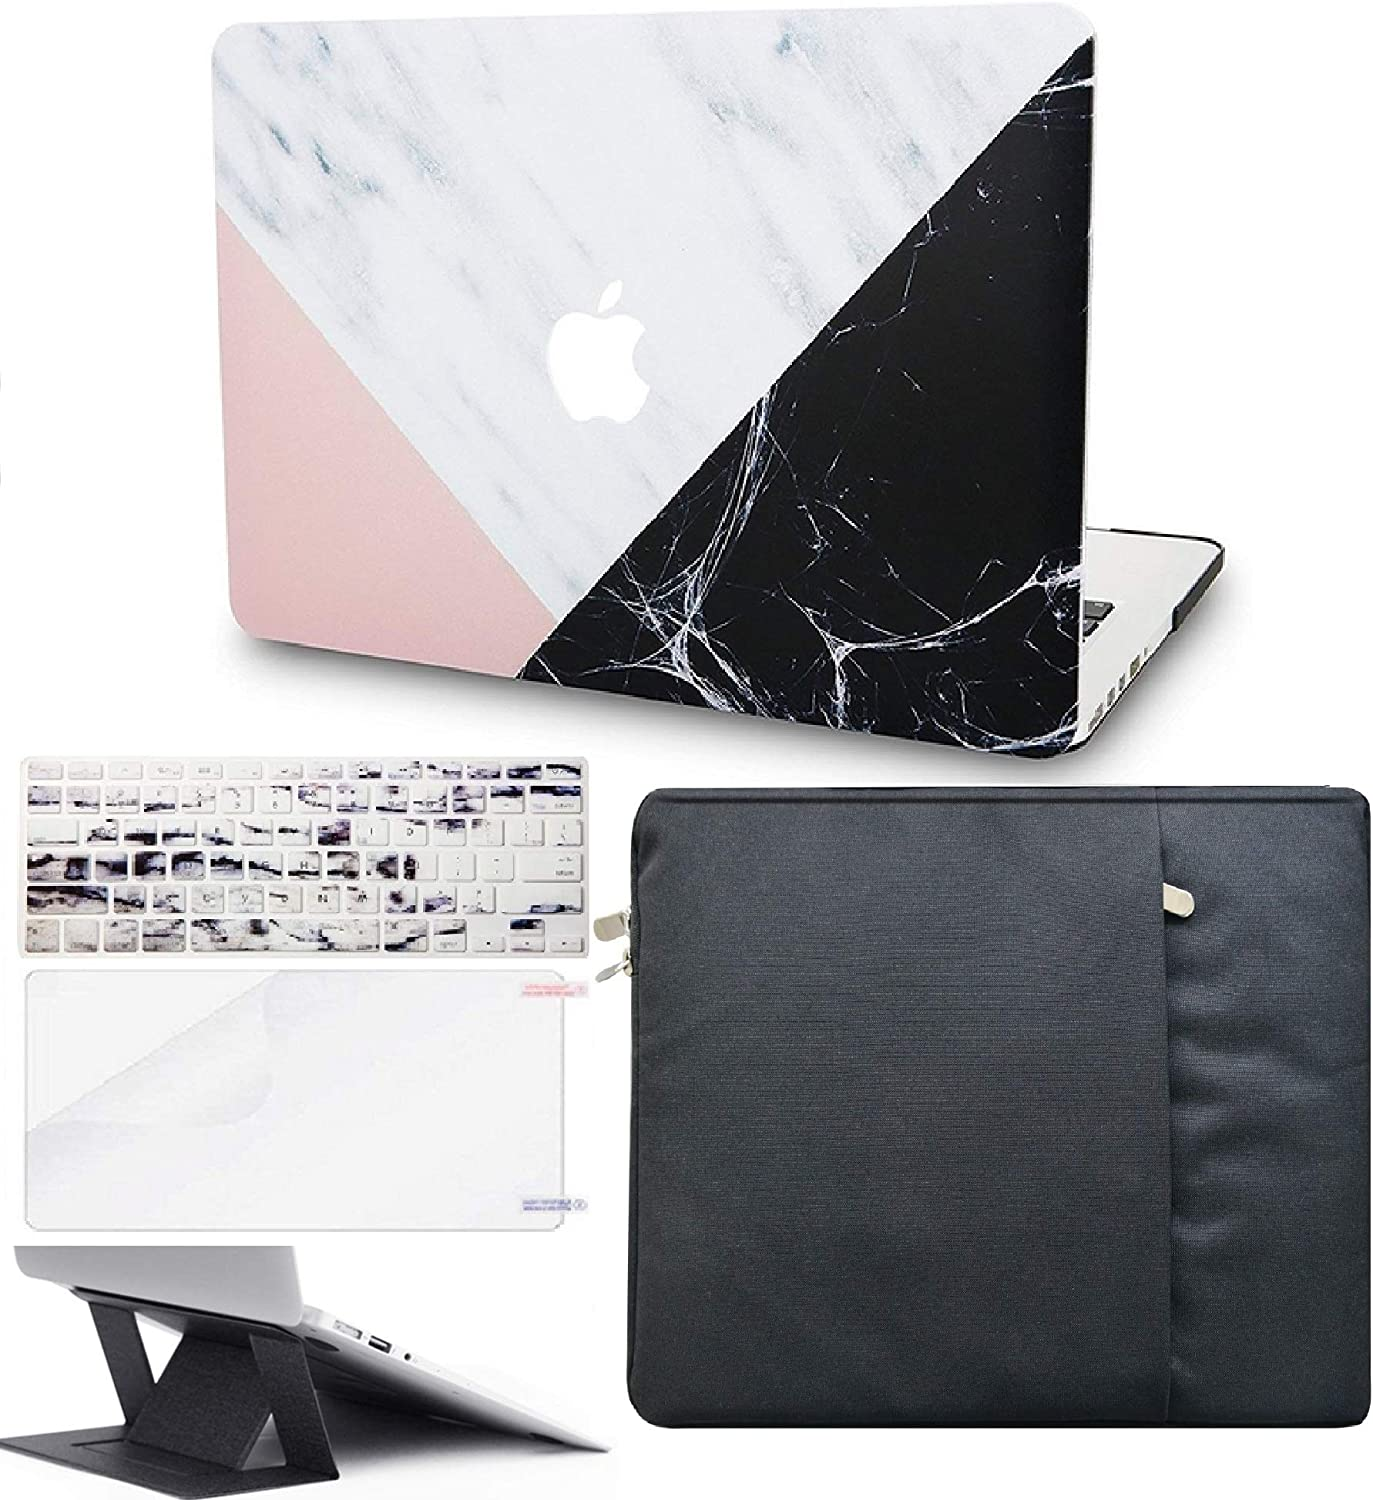 """KECC Laptop Case for MacBook Pro 15"""" (2019/2018/2017/2016) w/Keyboard Cover + Sleeve + Screen Protector + Laptop Stand (5 in 1 Bundle) Plastic Hard Shell Case A1990/A1707 (White Marble Pink Black)"""